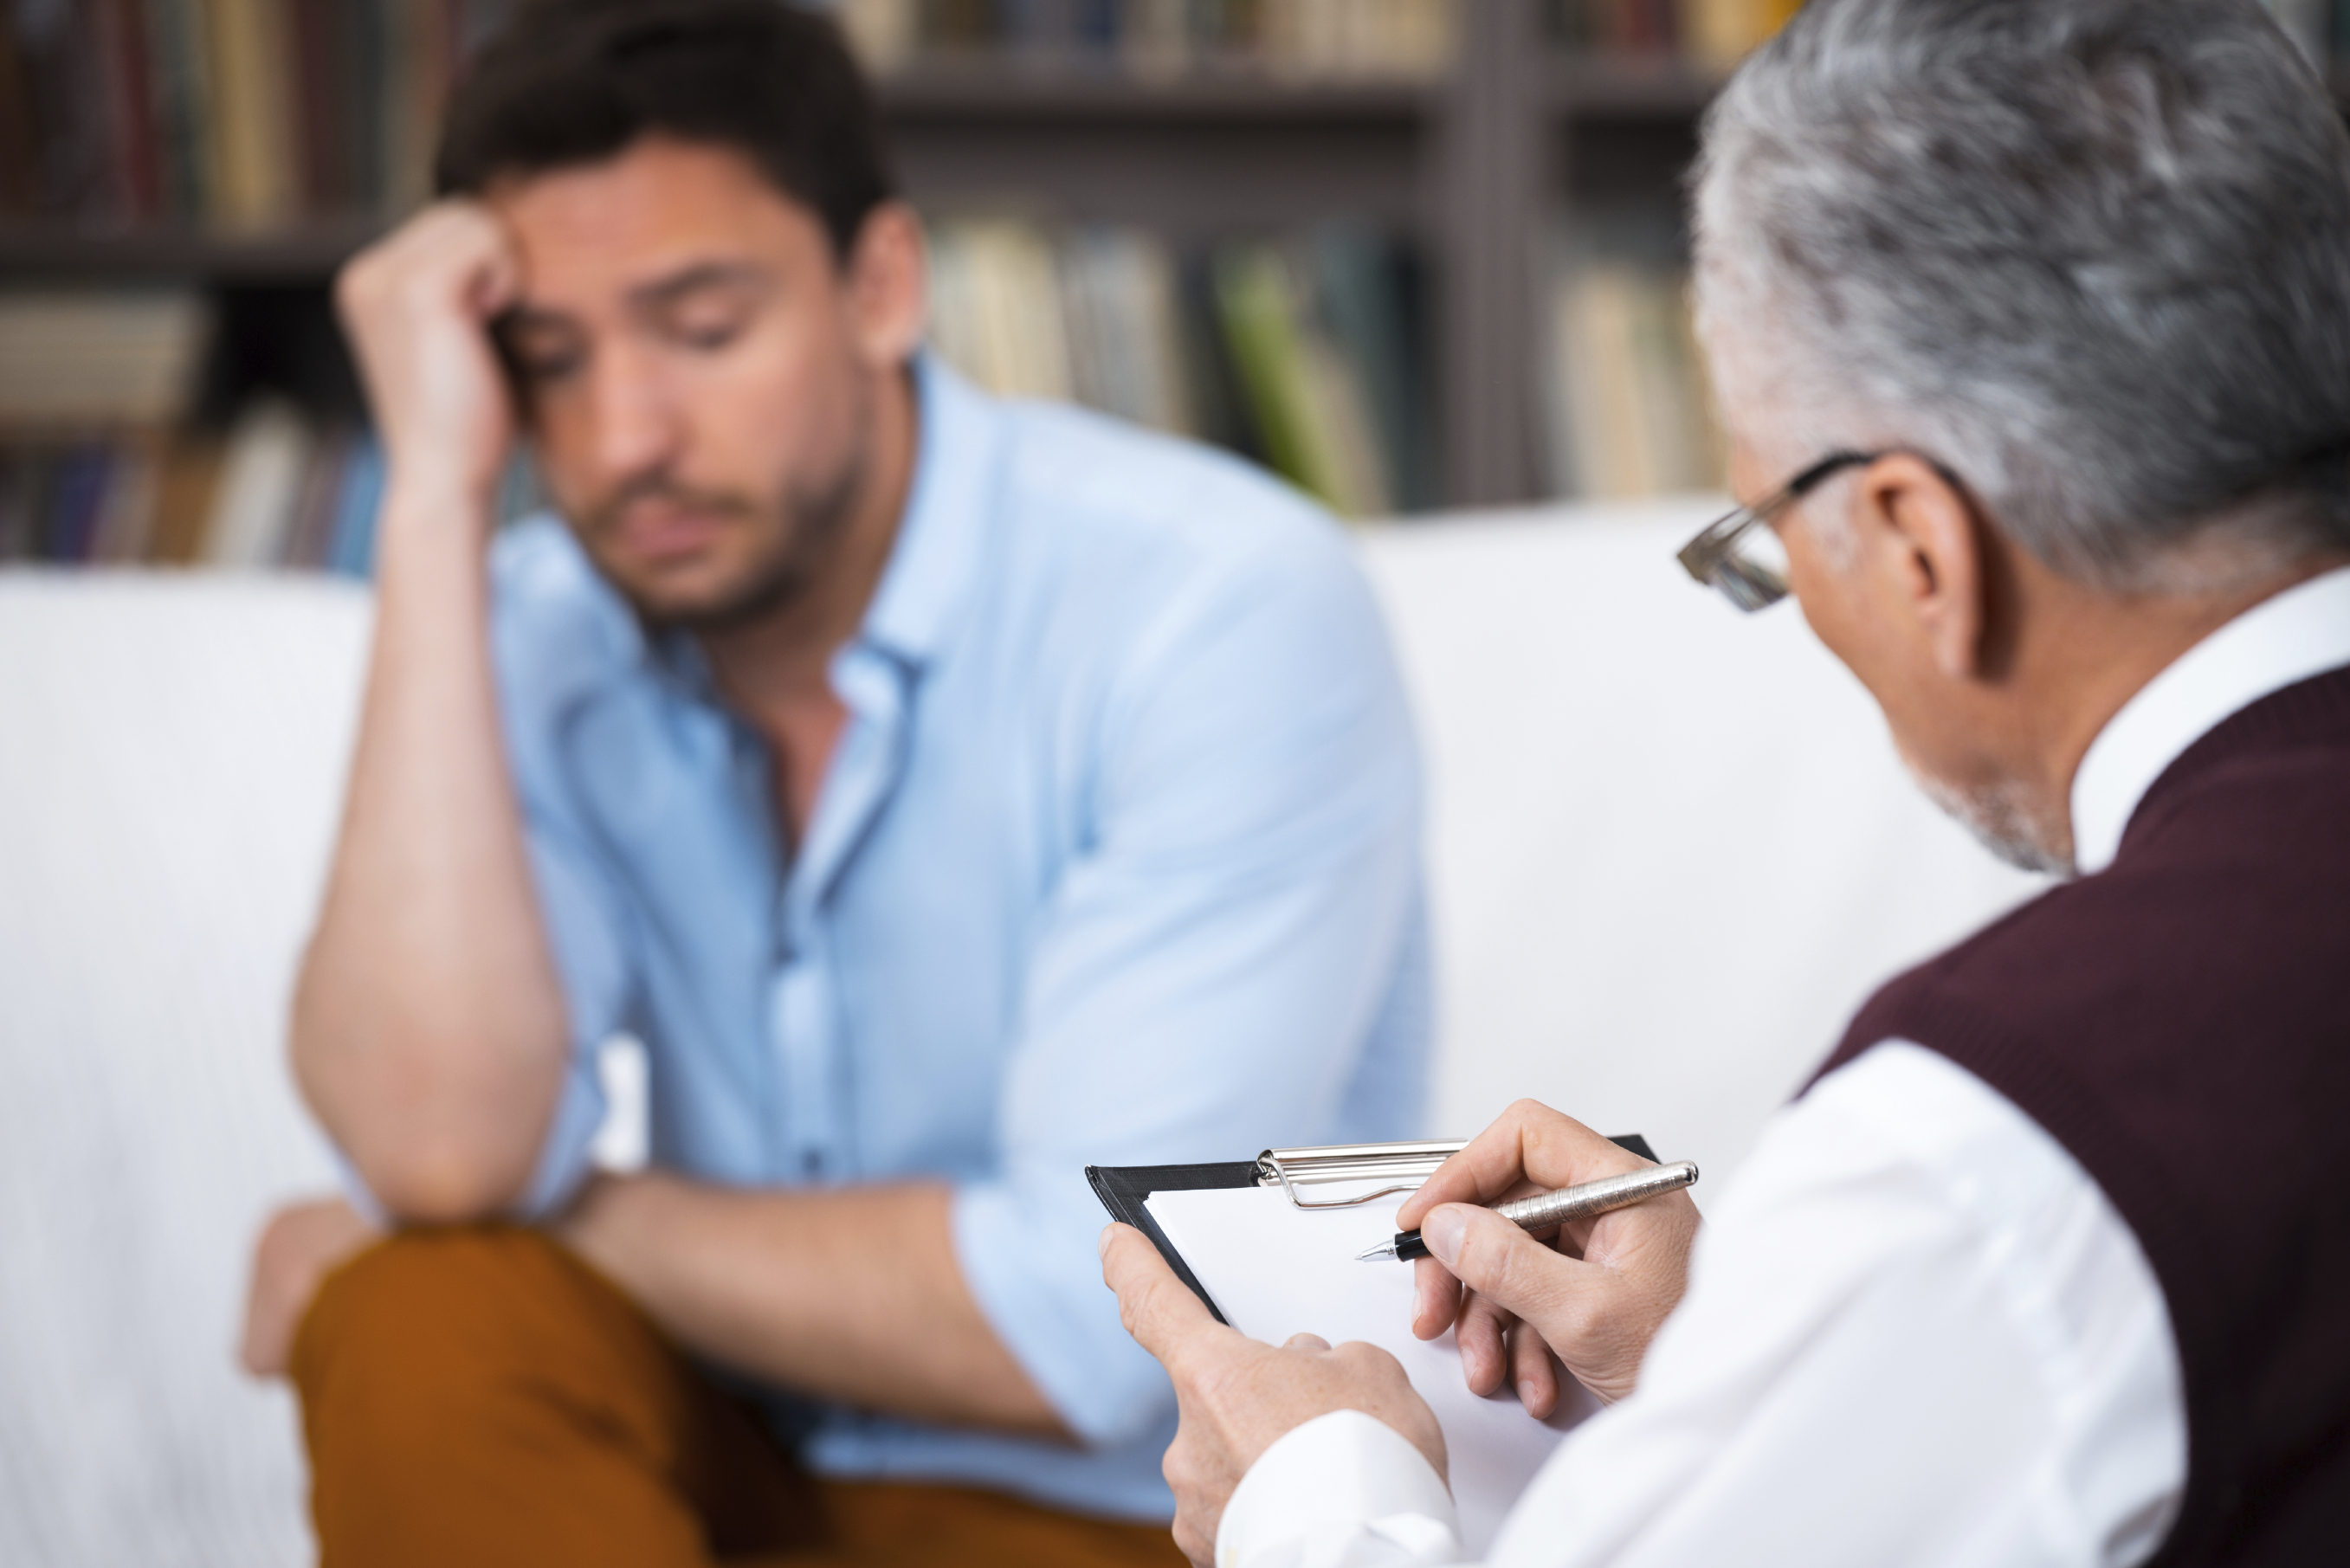 mental health counseling Mental health counselors offer guidance to individuals, couples, families and groups that are dealing with issues that affect their mental health and well-being.